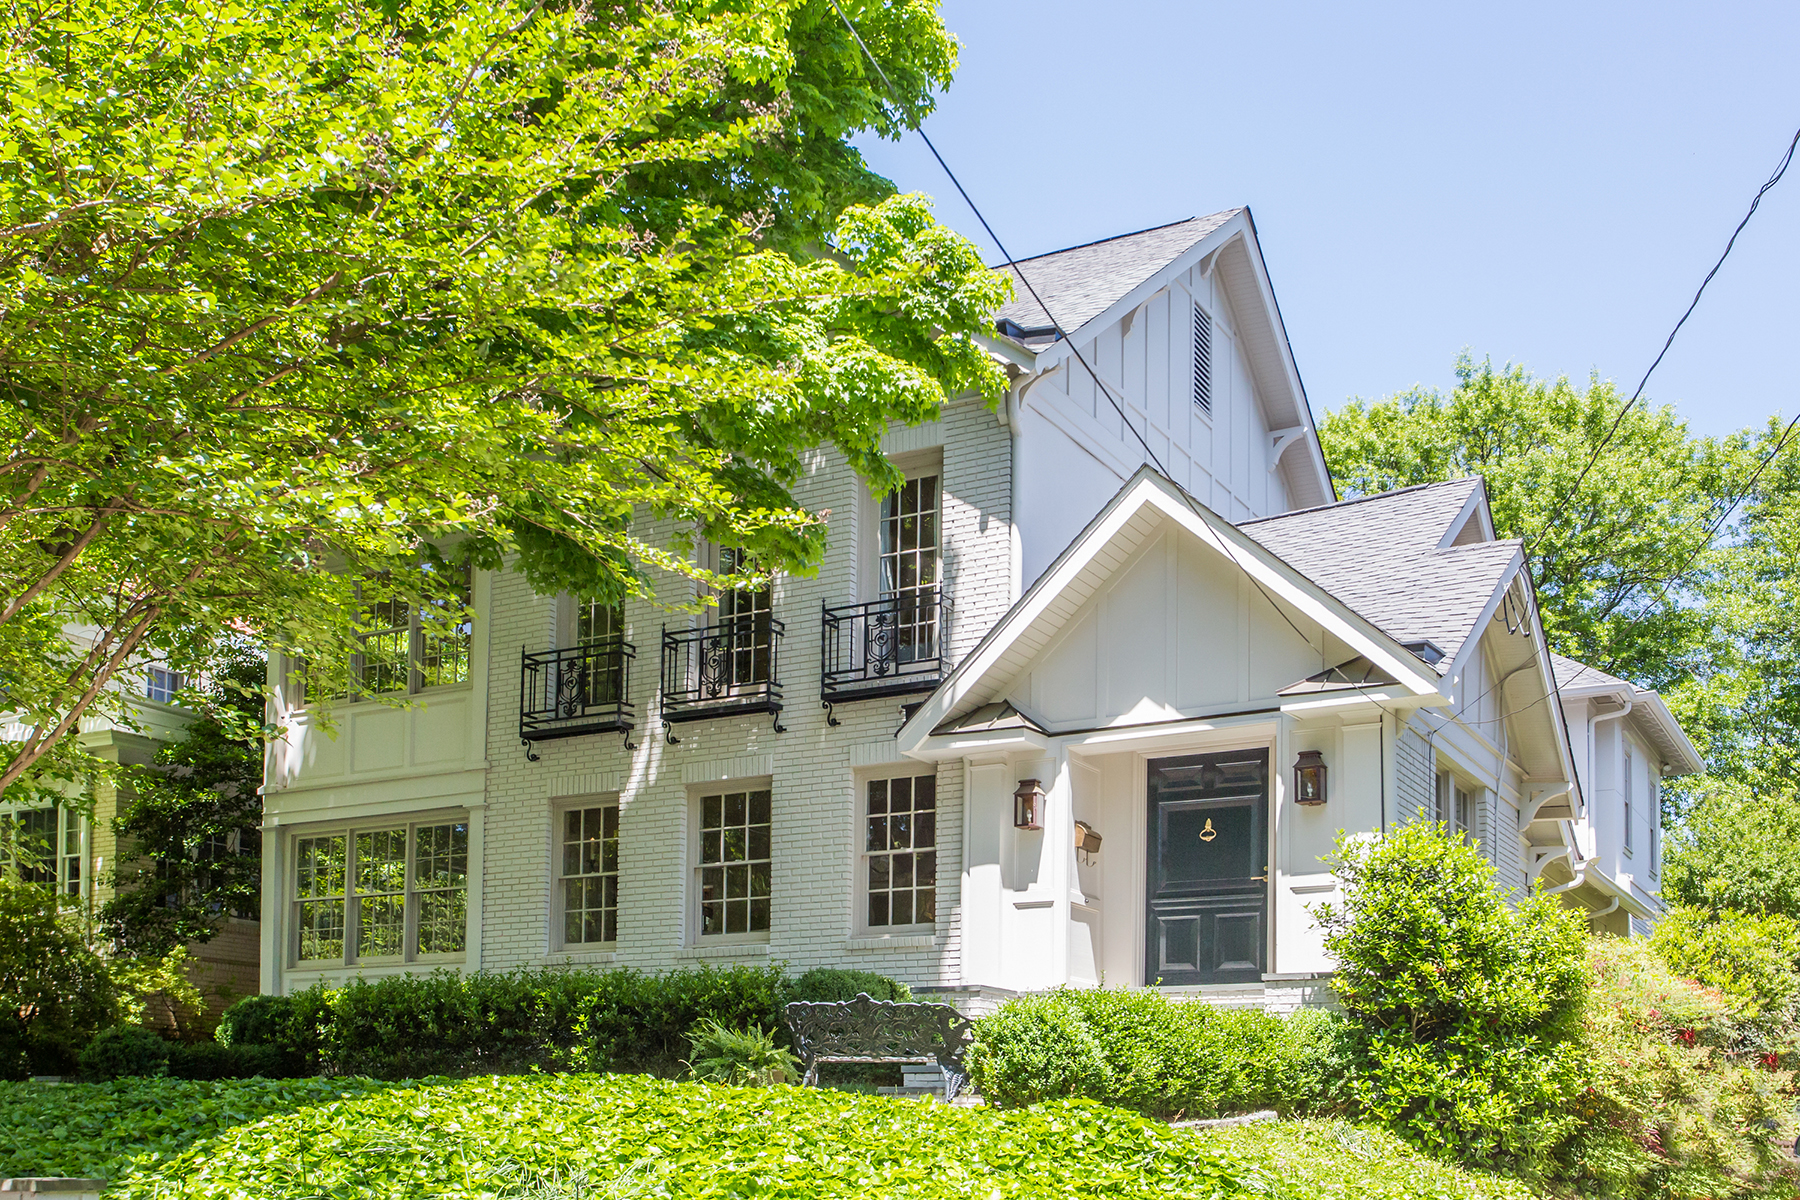 Single Family Home for Sale at Exquisite Renovation in Brookwood Hills 66 Huntington Rd NE Atlanta, Georgia 30309 United States